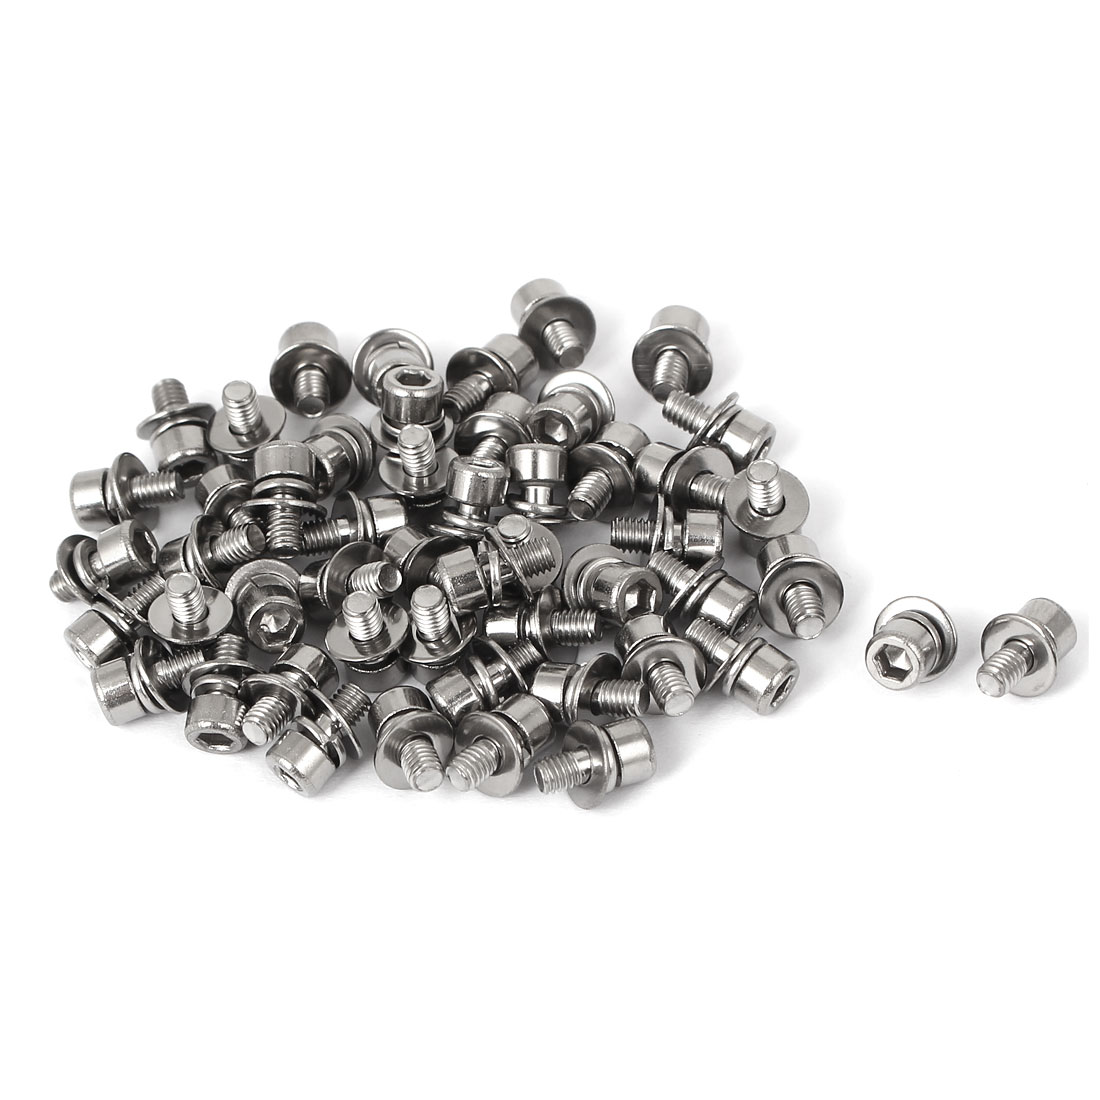 9mm Length M3 x 6mm Thread Hex Socket Head Cap Screw w Washer 50 Pcs